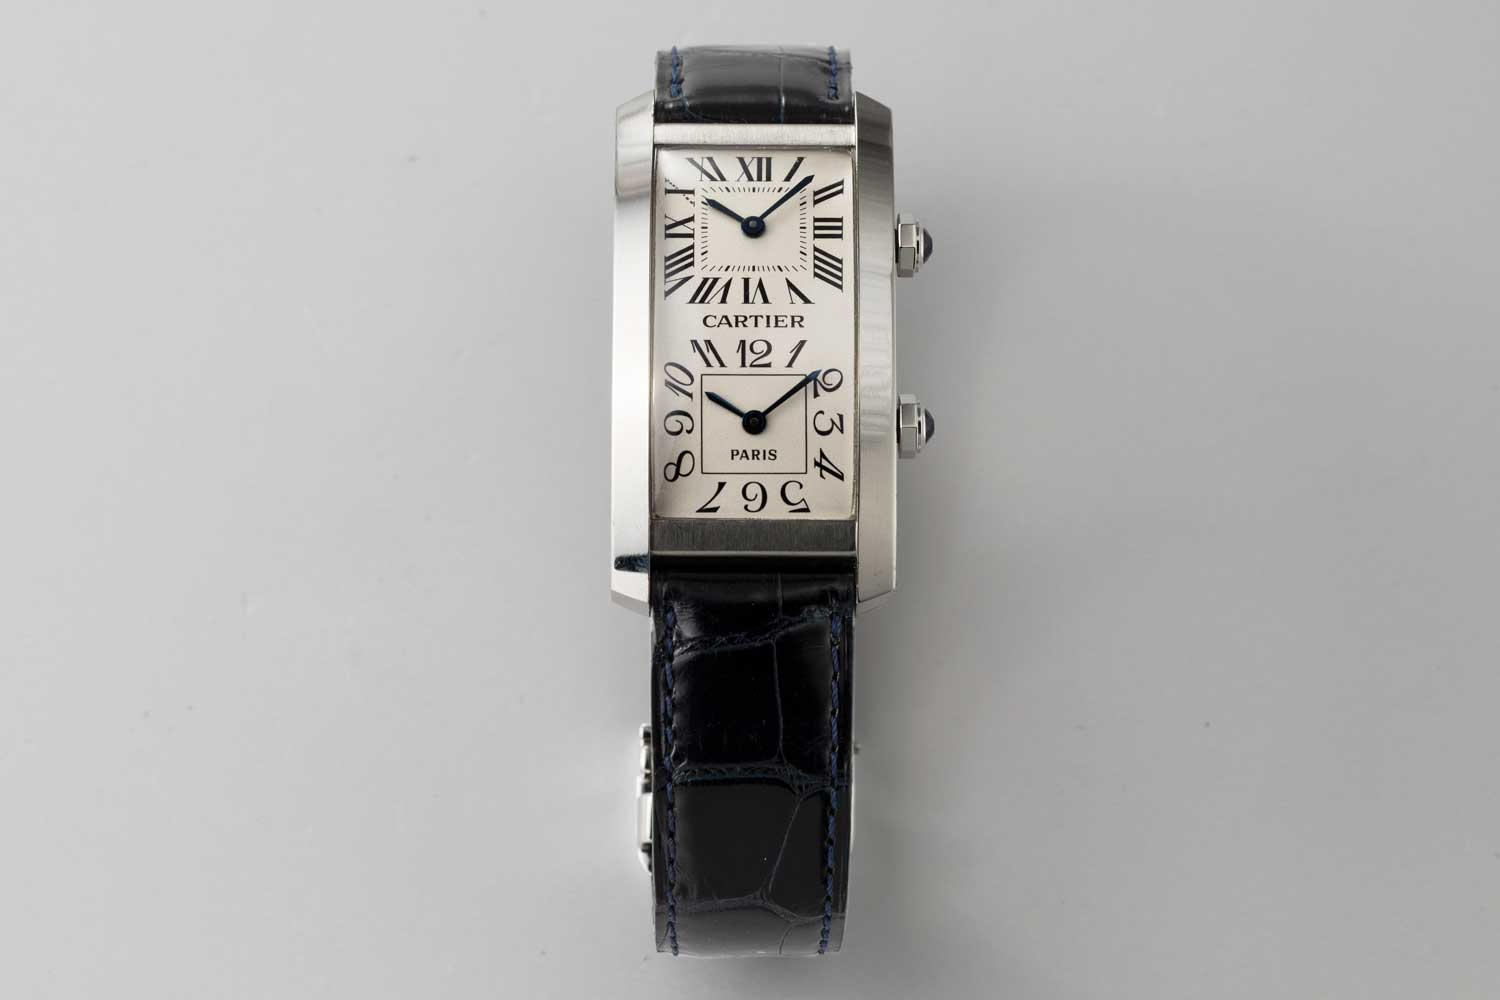 Rare Cartier Tank Cintrée dual time zone watch, driven by two small movements with Arabic and Roman numerals on the two dials; the watch pictured here is the property of the one and only, Auro Montanari (©Revolution)